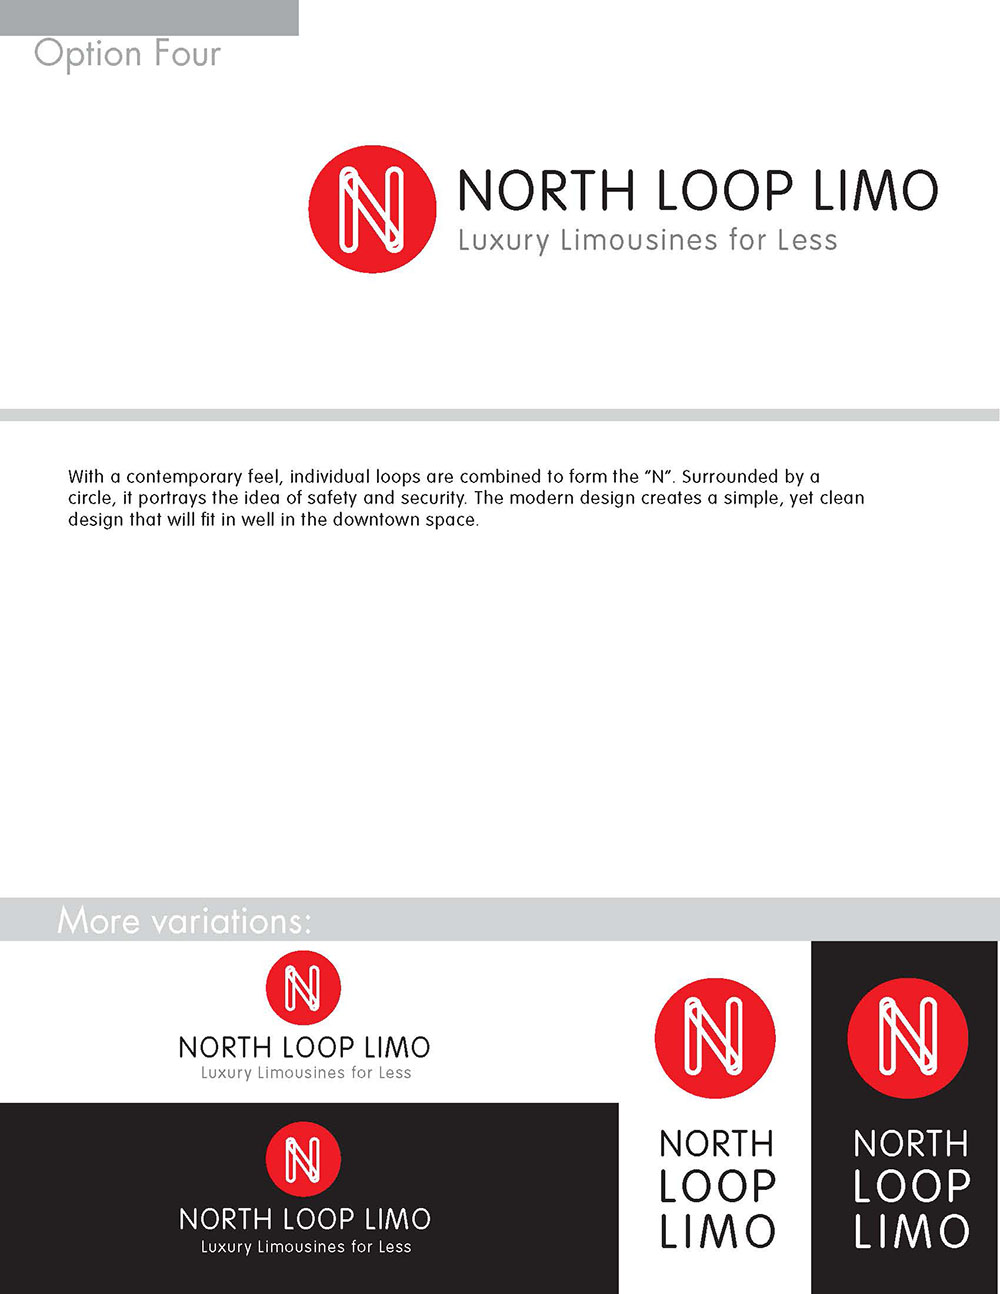 North Loop Limo Colored Concepts